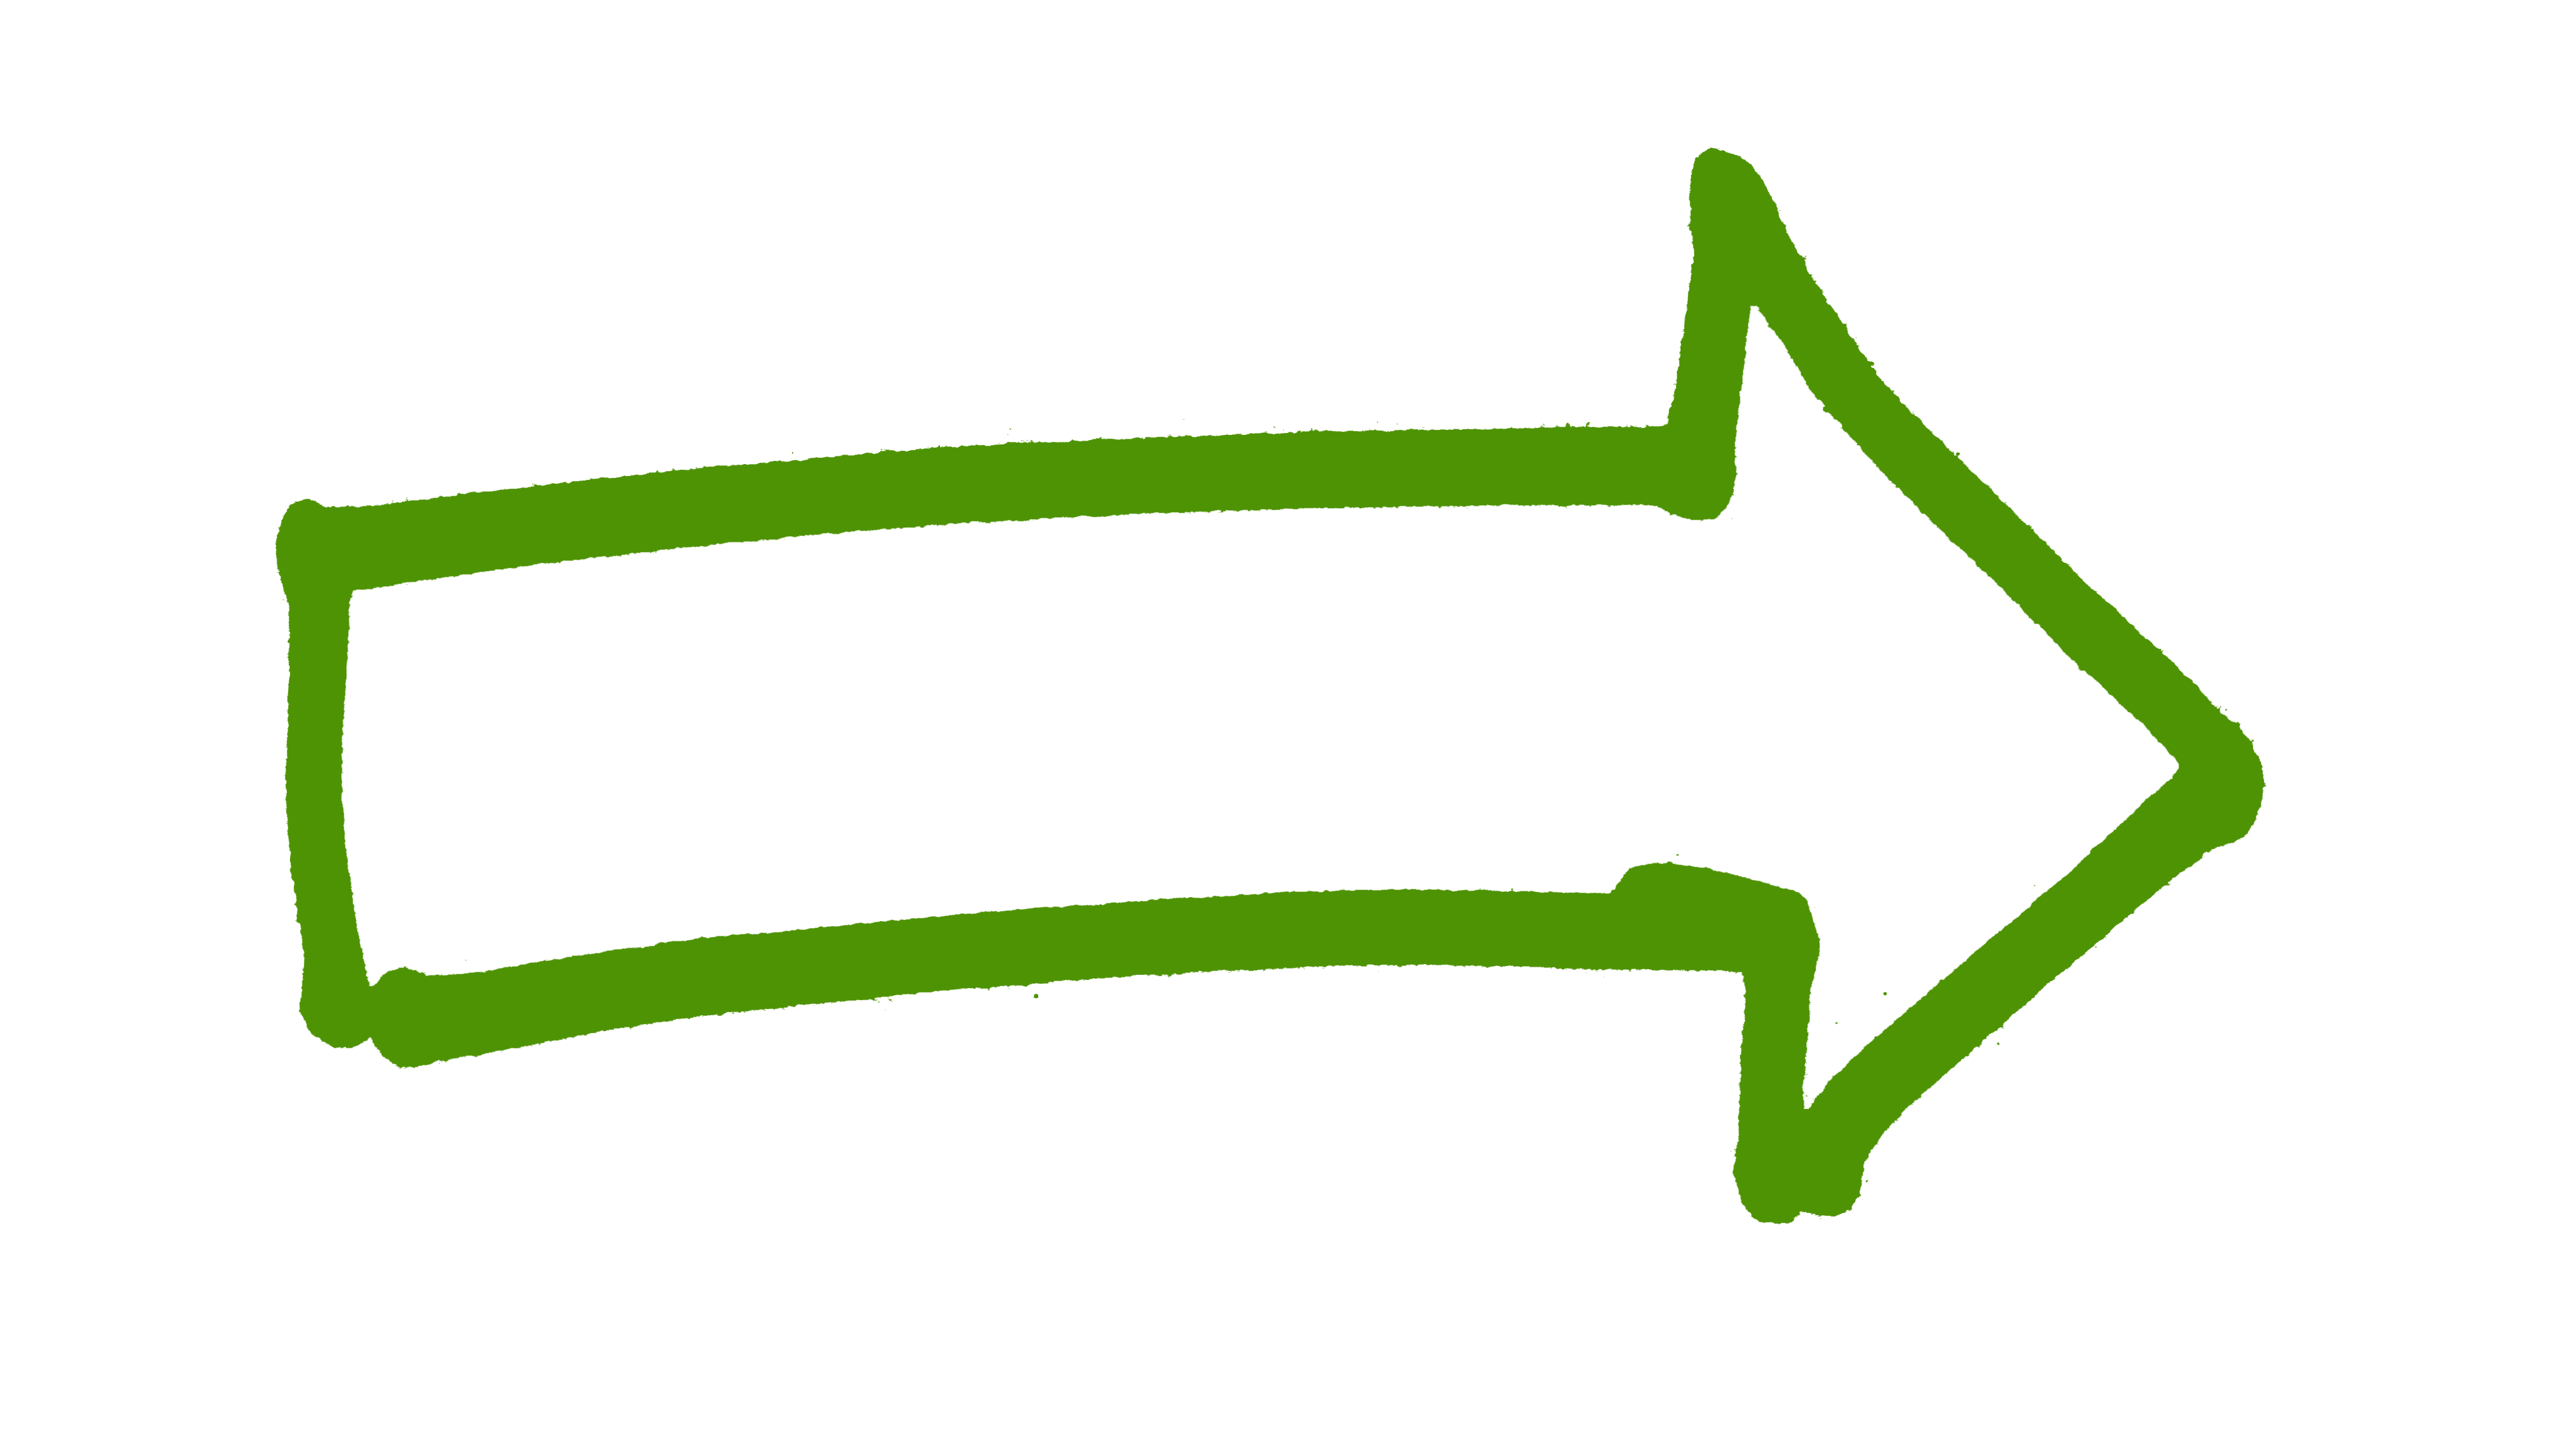 green right arrow png